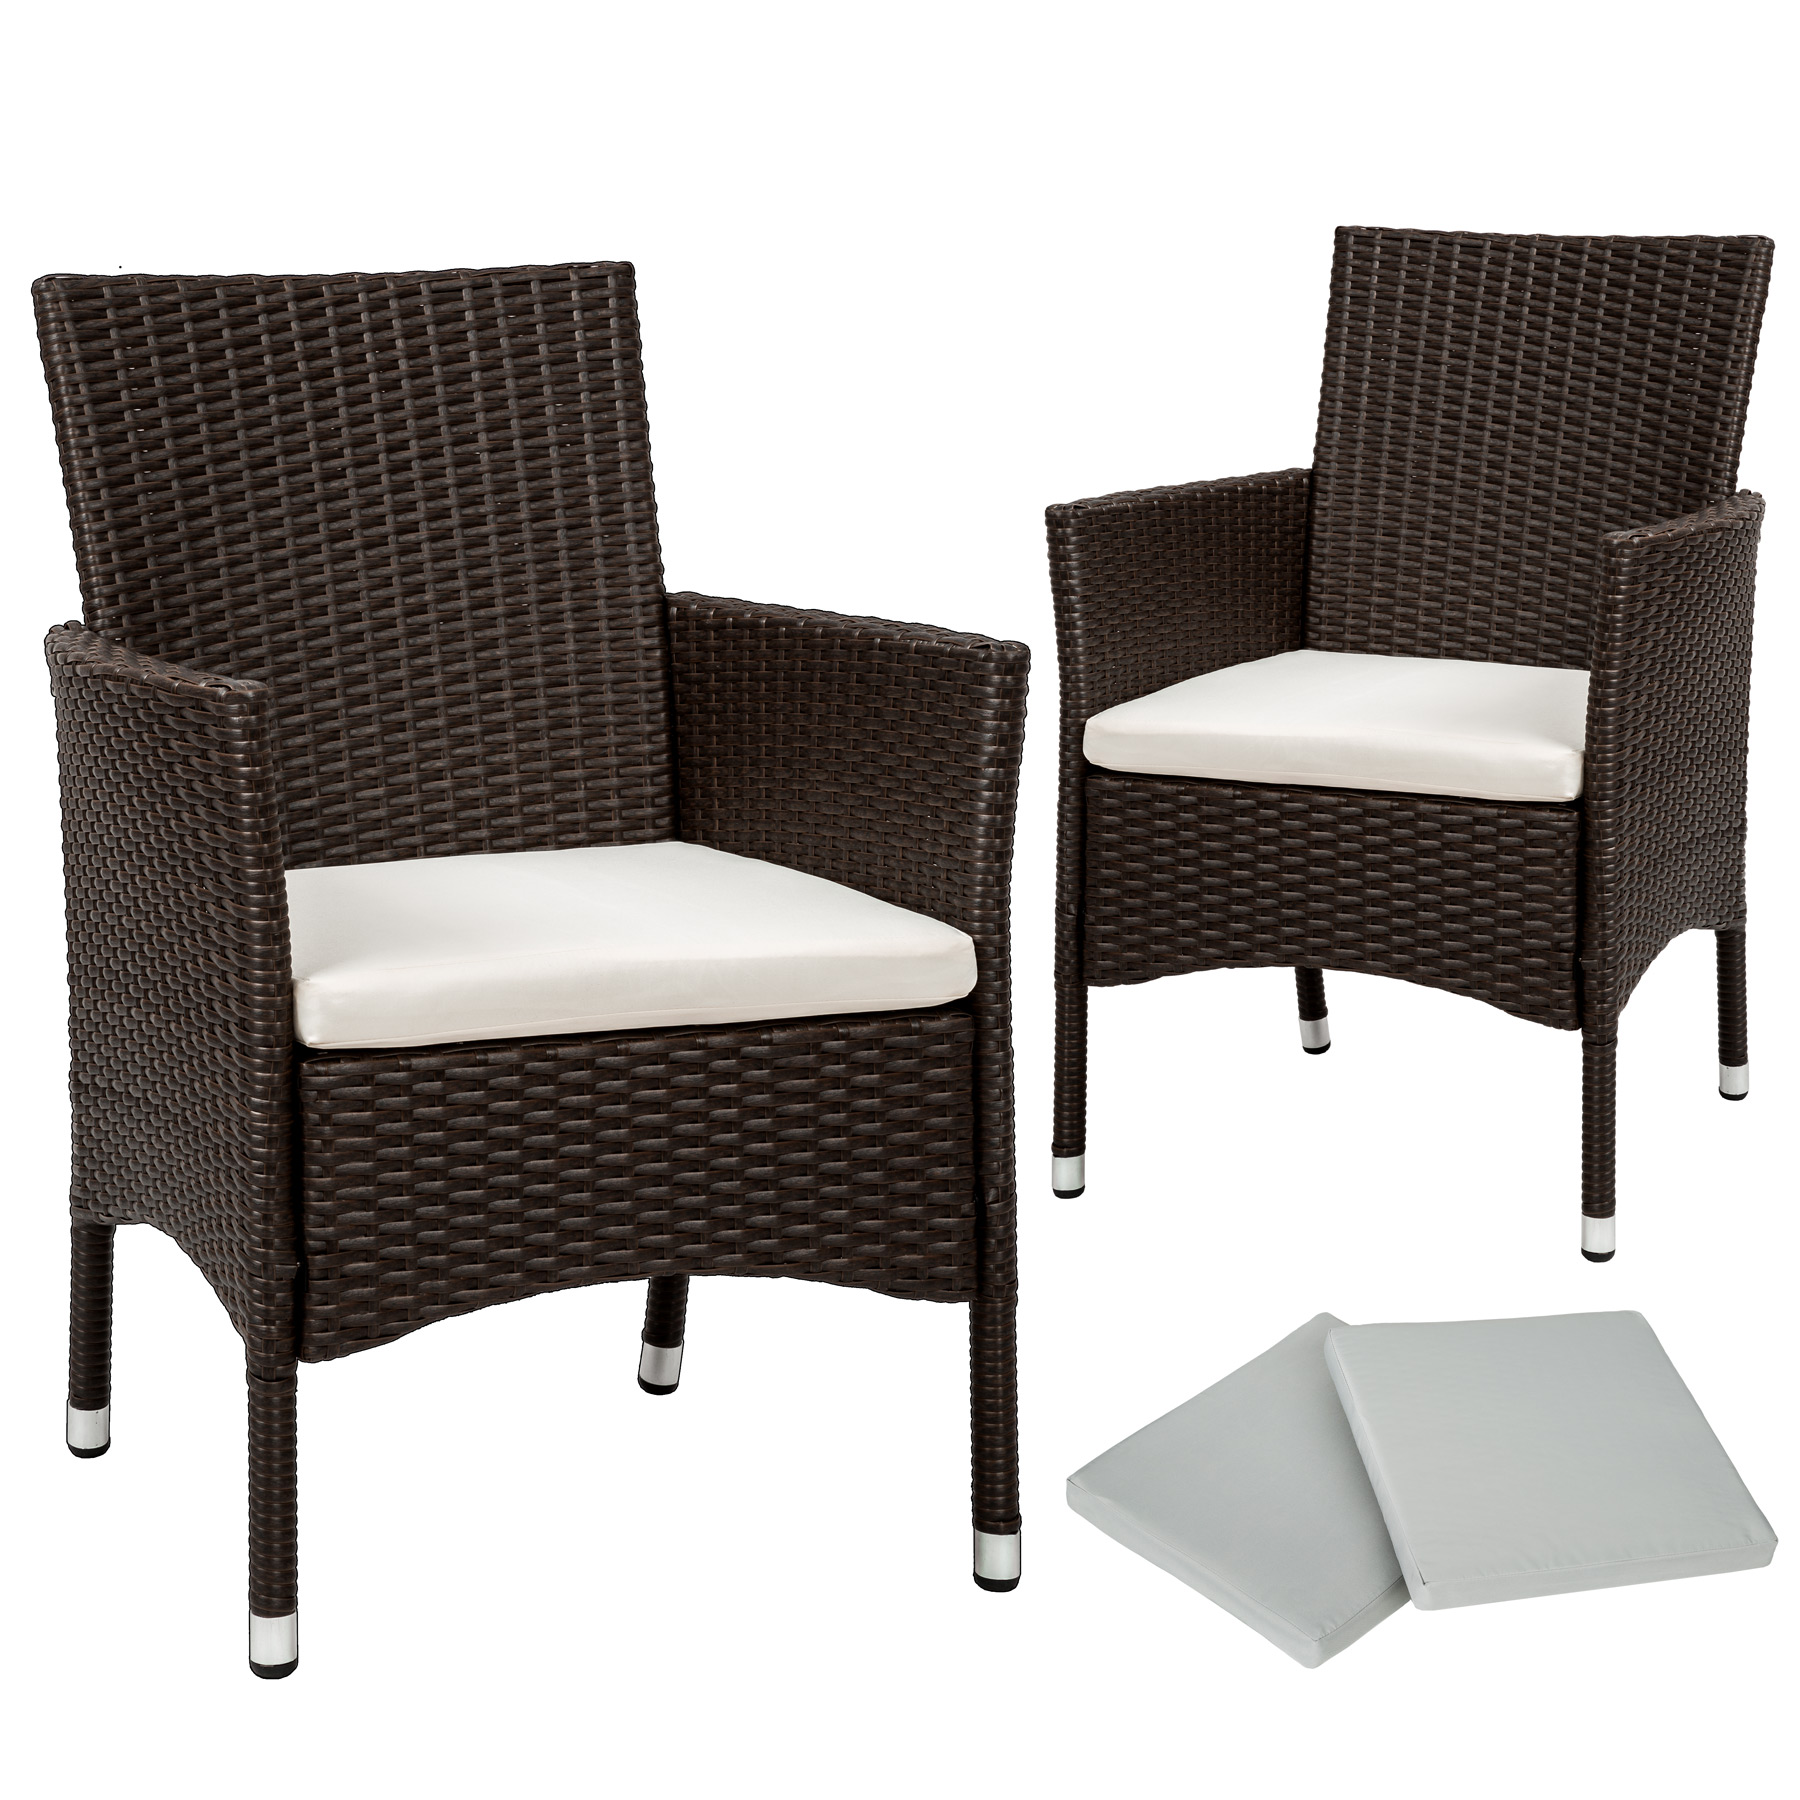 2 x poly rattan garden chairs wicker outdoor armchair set - Chaise resine tressee ...